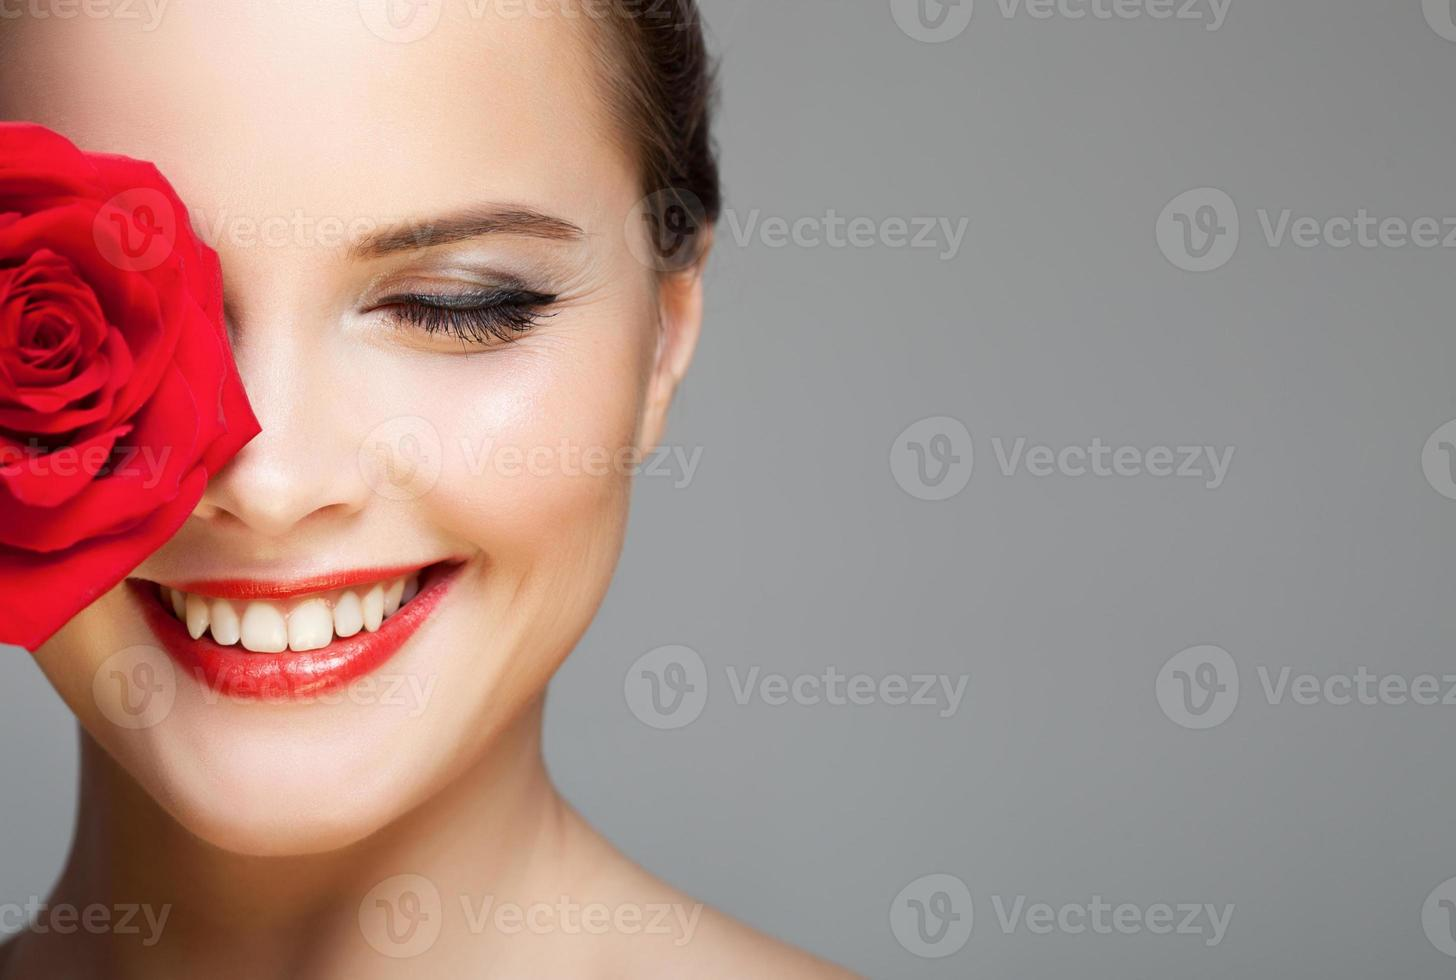 Close-up portrait of beautiful smiling woman with red rose. photo